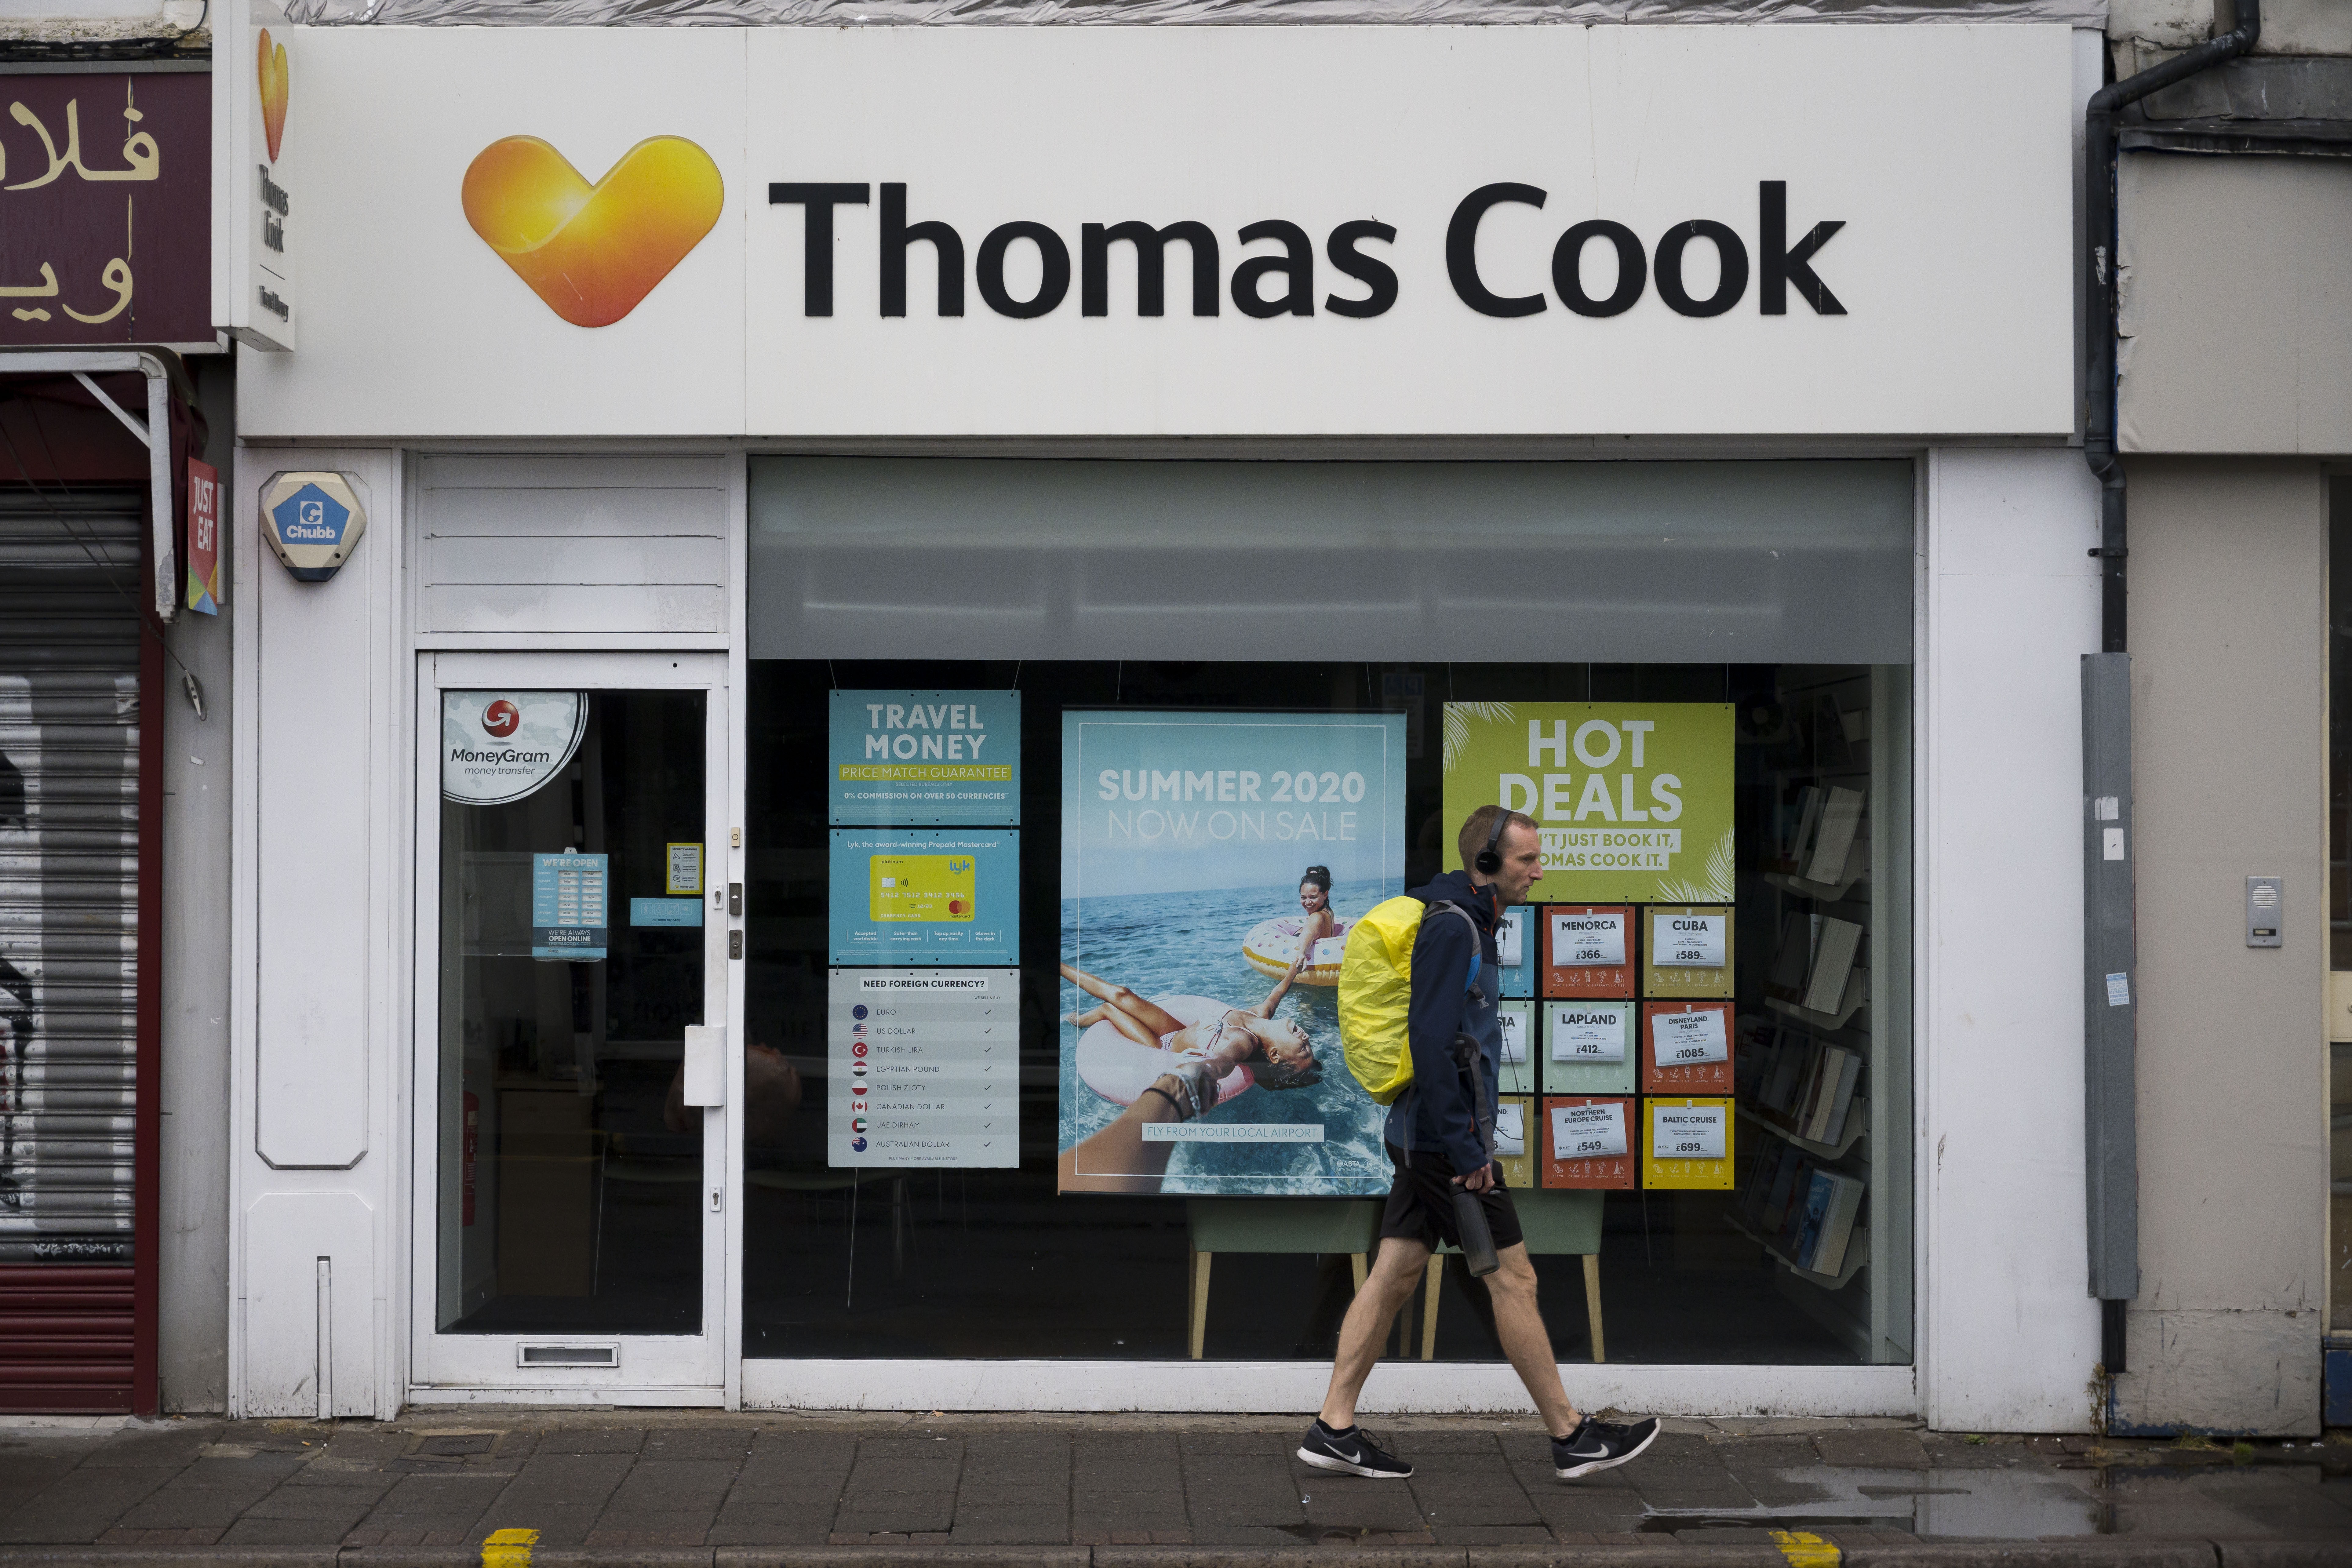 CARDIFF, UNITED KINGDOM - SEPTEMBER 22: A Thomas Cook travel agent store on September 22, 2019 in Cardiff, United Kingdom. Thomas Cook has collapsed after talks over the weekend with lenders, shareholders and the UK government failed to piece together a rescue package for the 178-year-old travel company. The collapse leaves 21,000 jobs at risk and 150,000 UK holidaymakers stranded abroad. (Photo by Matthew Horwood/Getty Images)